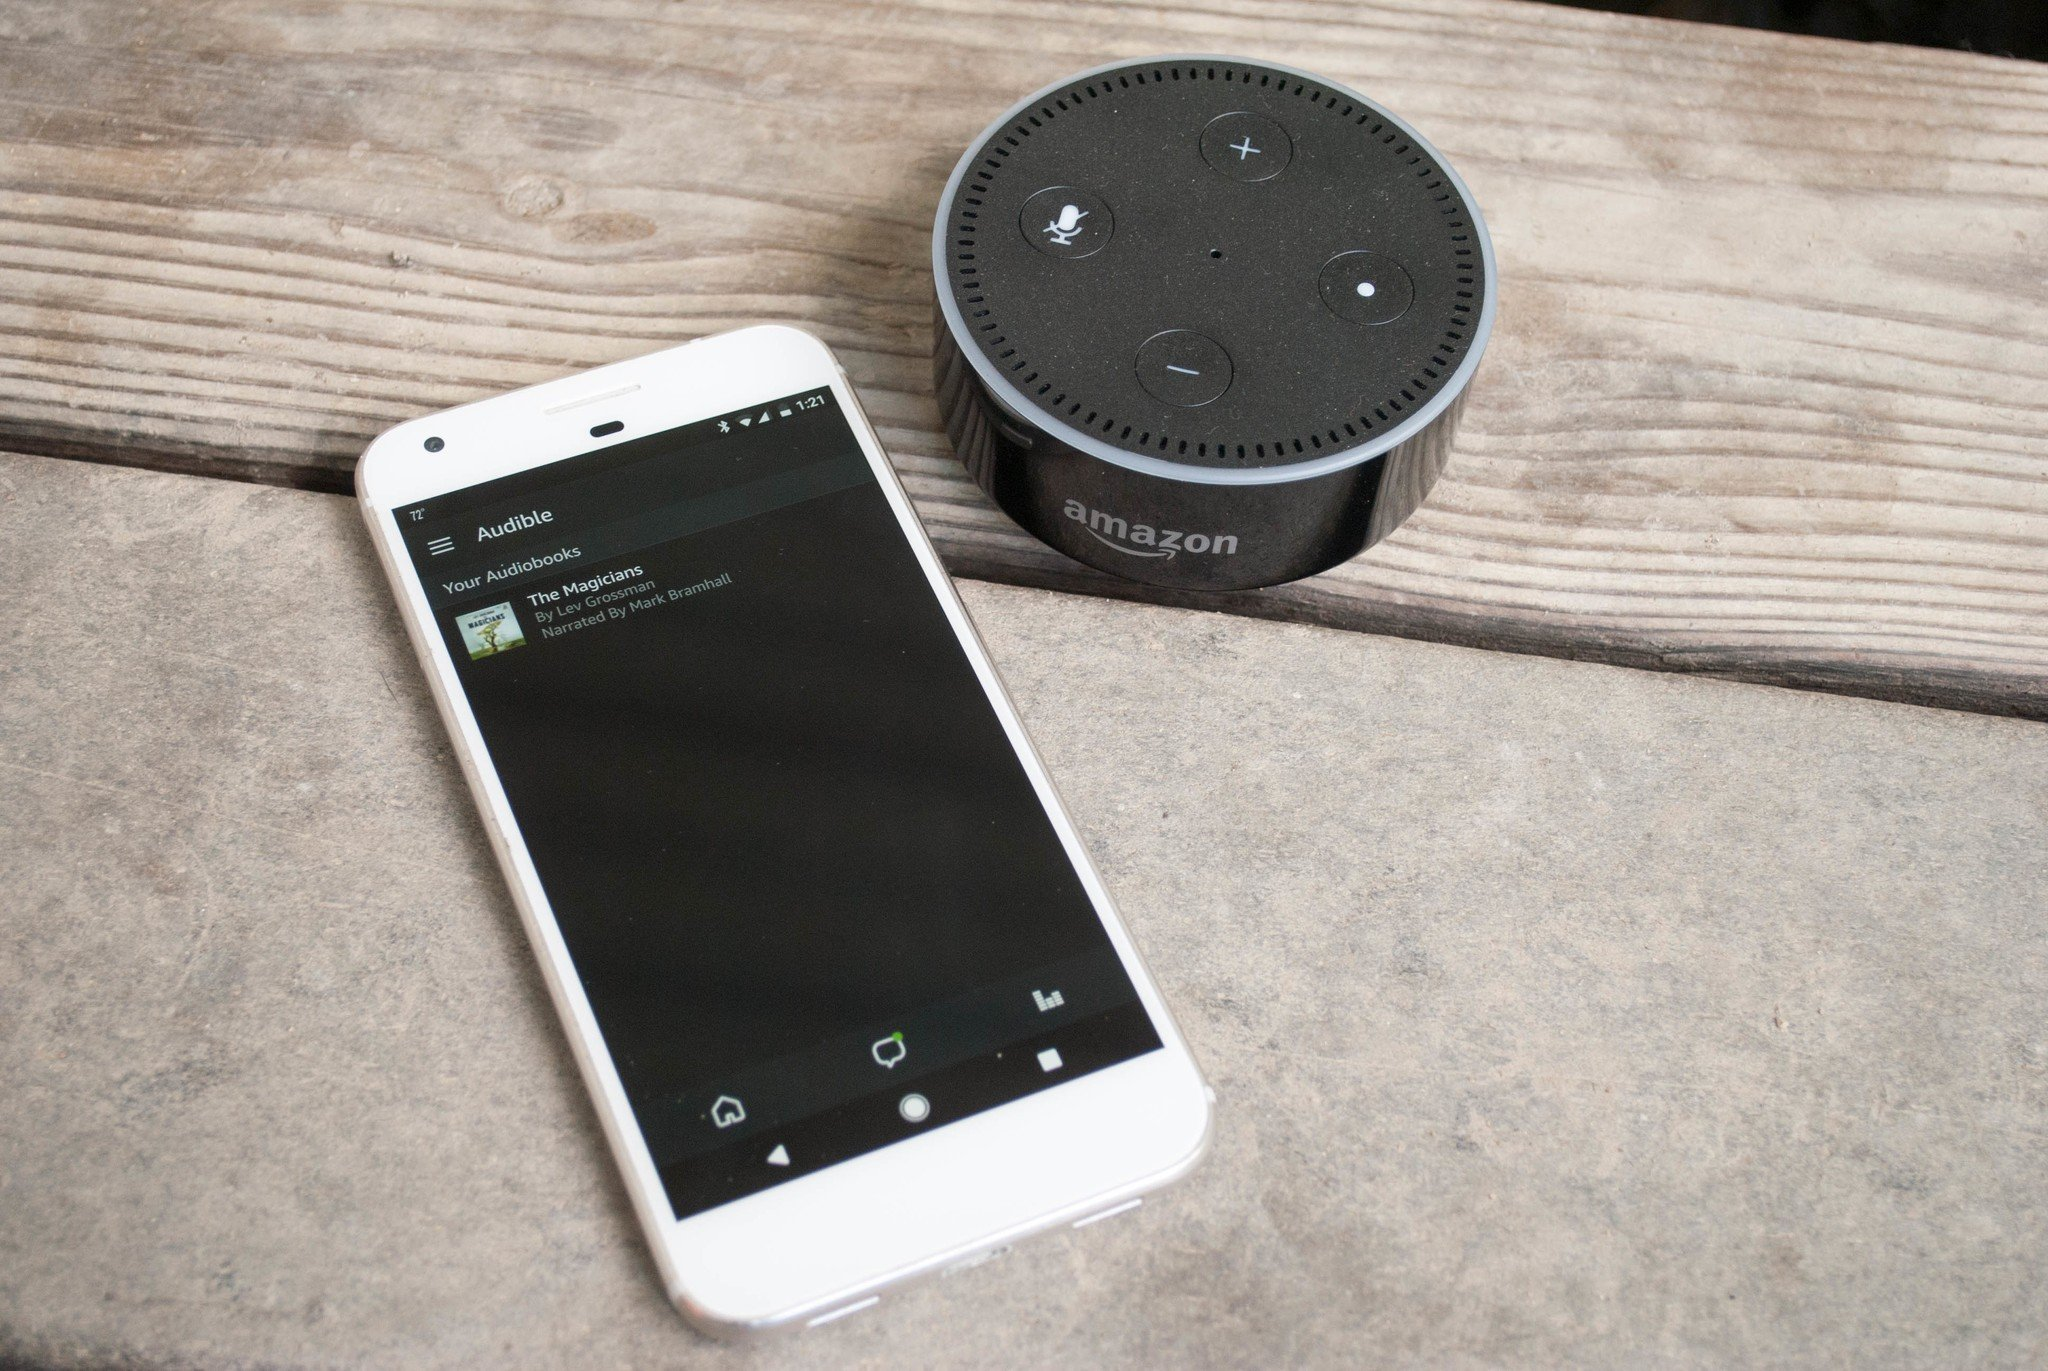 Alexa Audio How To Listen To Audiobooks Using Amazon Alexa Android